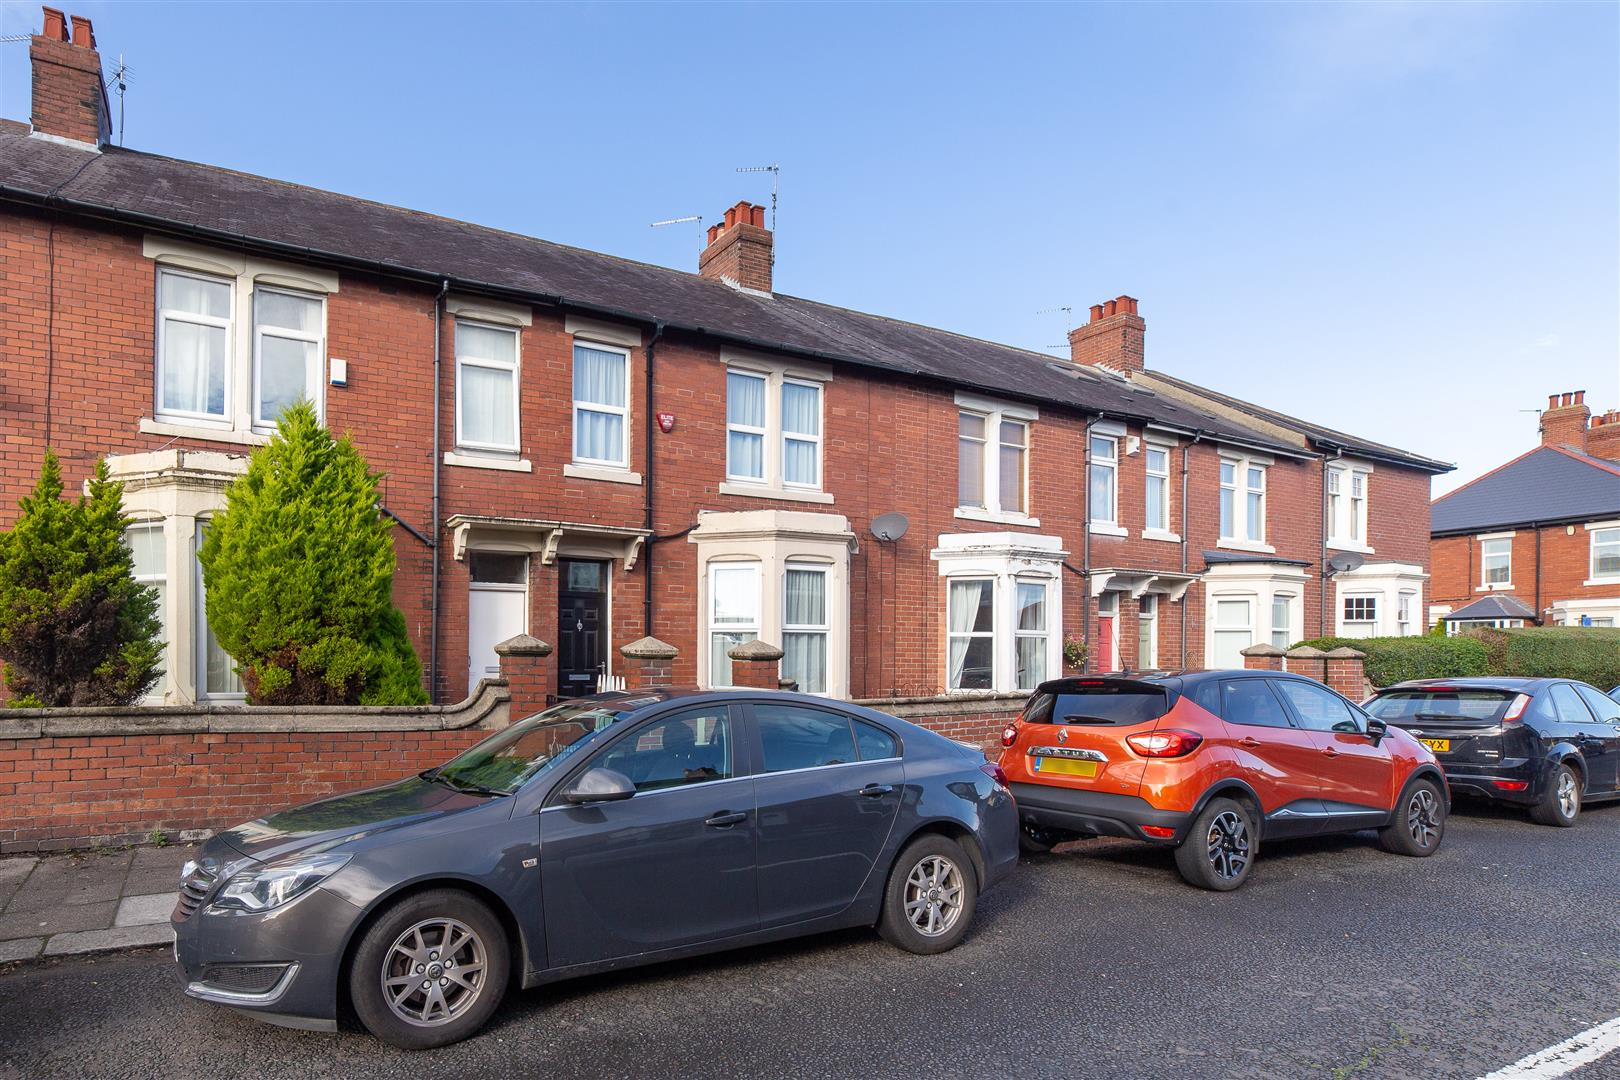 3 bed terraced house for sale in Heaton, NE6 5SQ  - Property Image 1